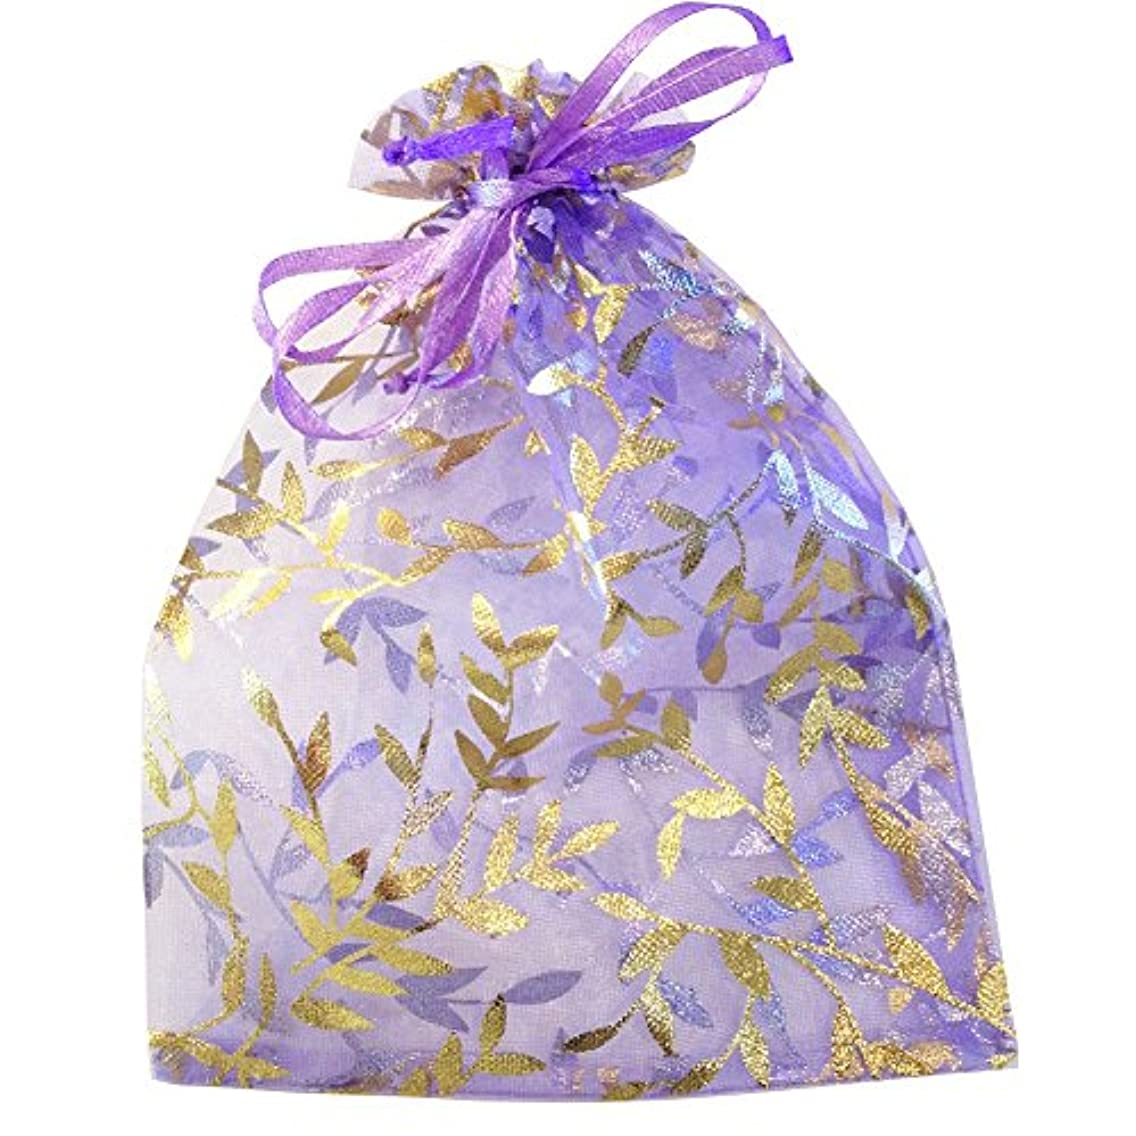 Lavender with Golden Leaves 6 by 4.5 Inches